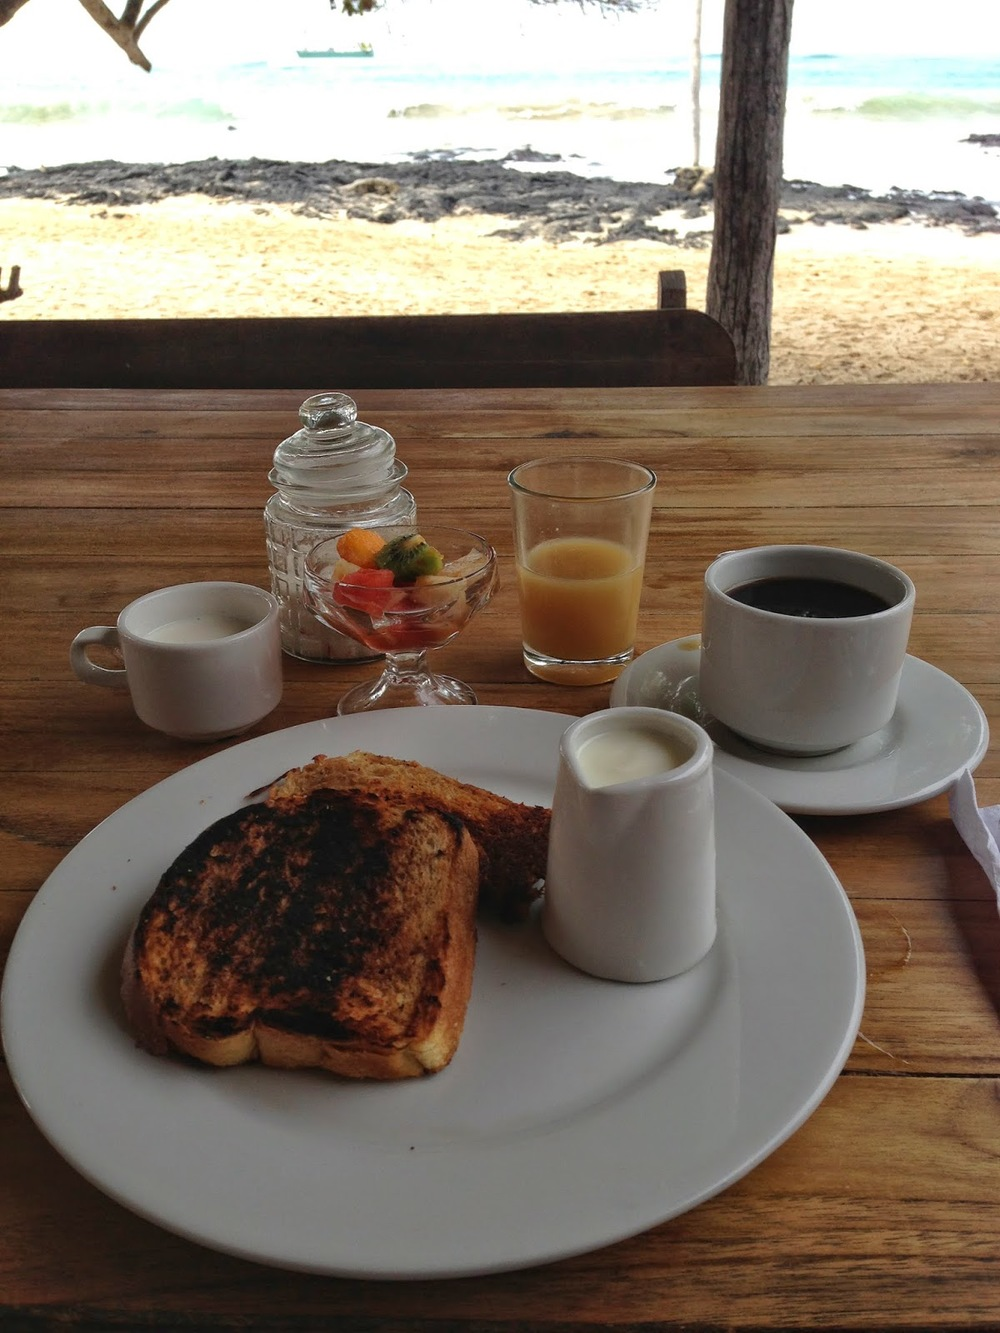 On the menu this morning: French toast, fruit cup, yogurt and honey, fresh papaya juice, and coffee. Delish.